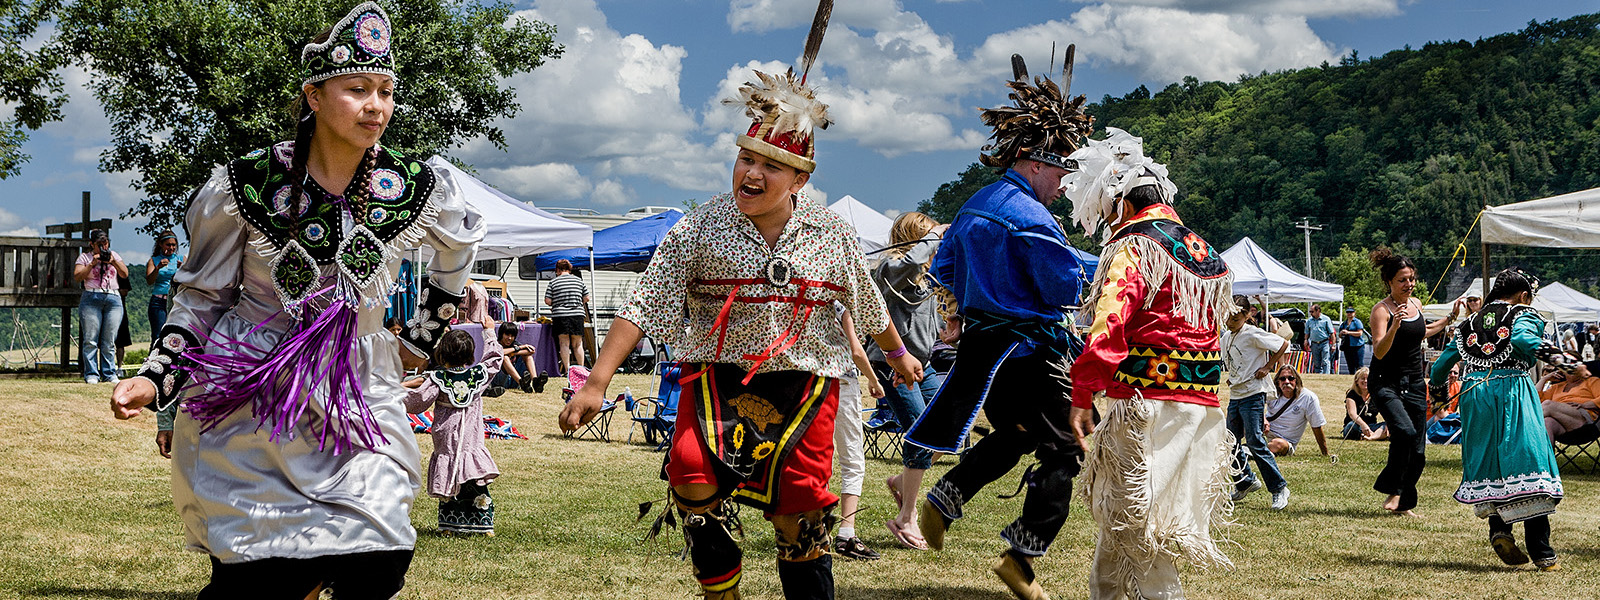 Traditional dancing at annual Kanatsiohareke Mohawk Indian Festival IN Fonda